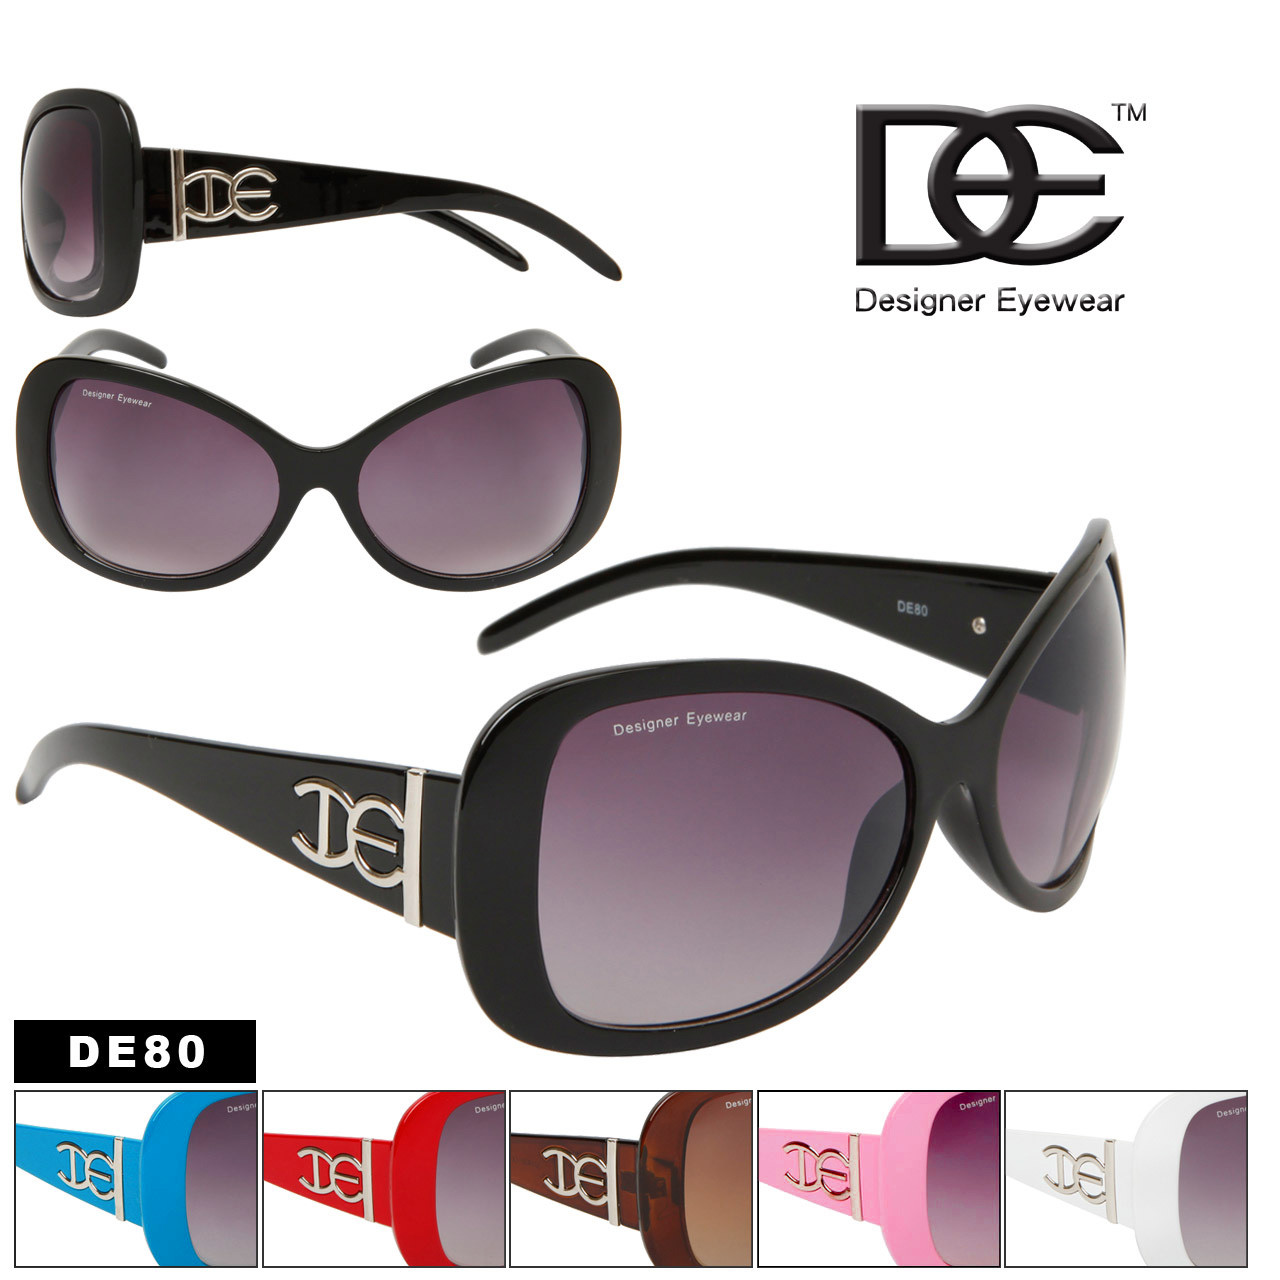 Fashion Sunglasses DE80